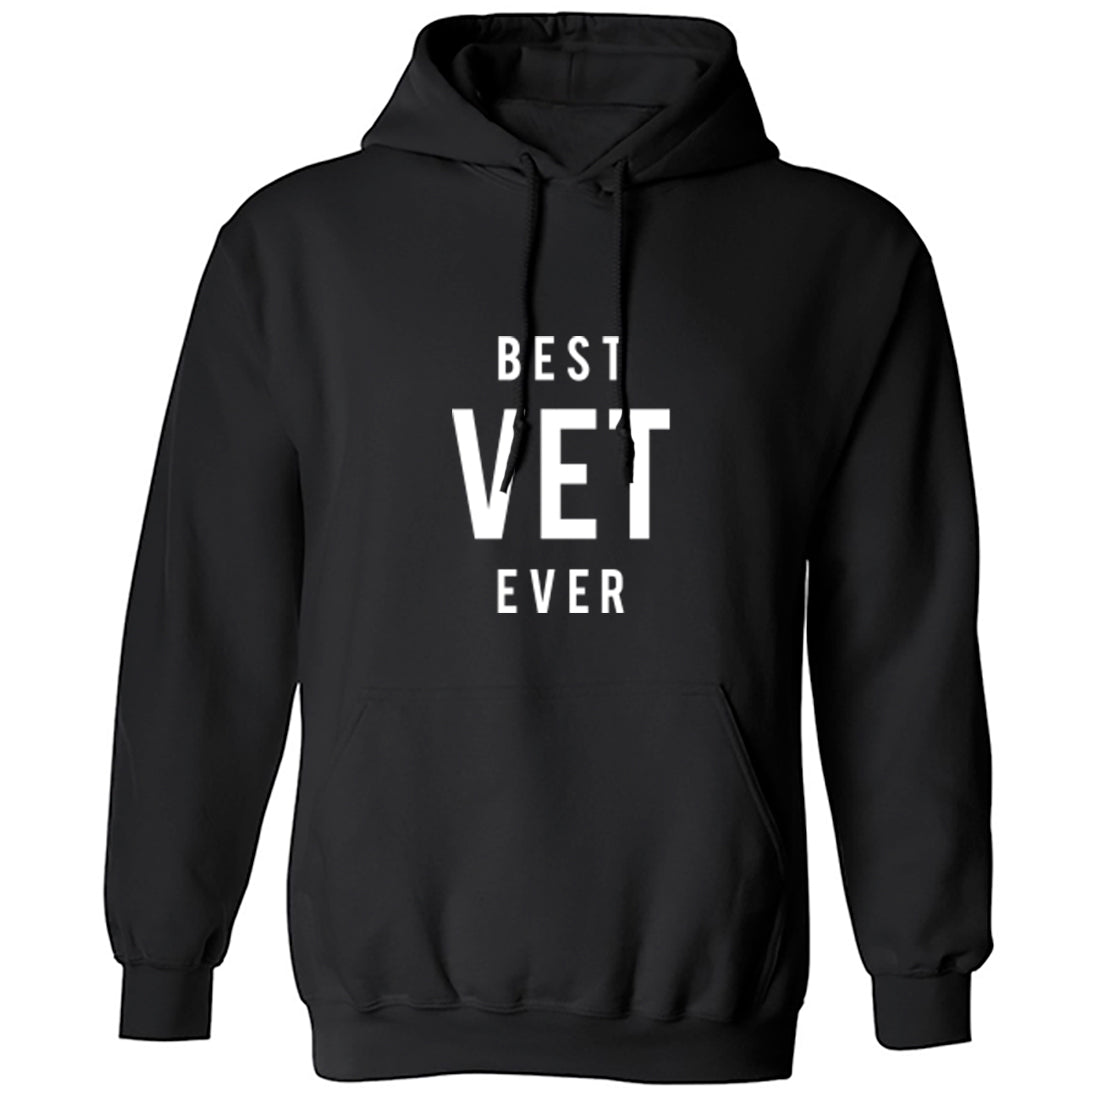 Best Vet Ever Unisex Hoodie K1492 - Illustrated Identity Ltd.